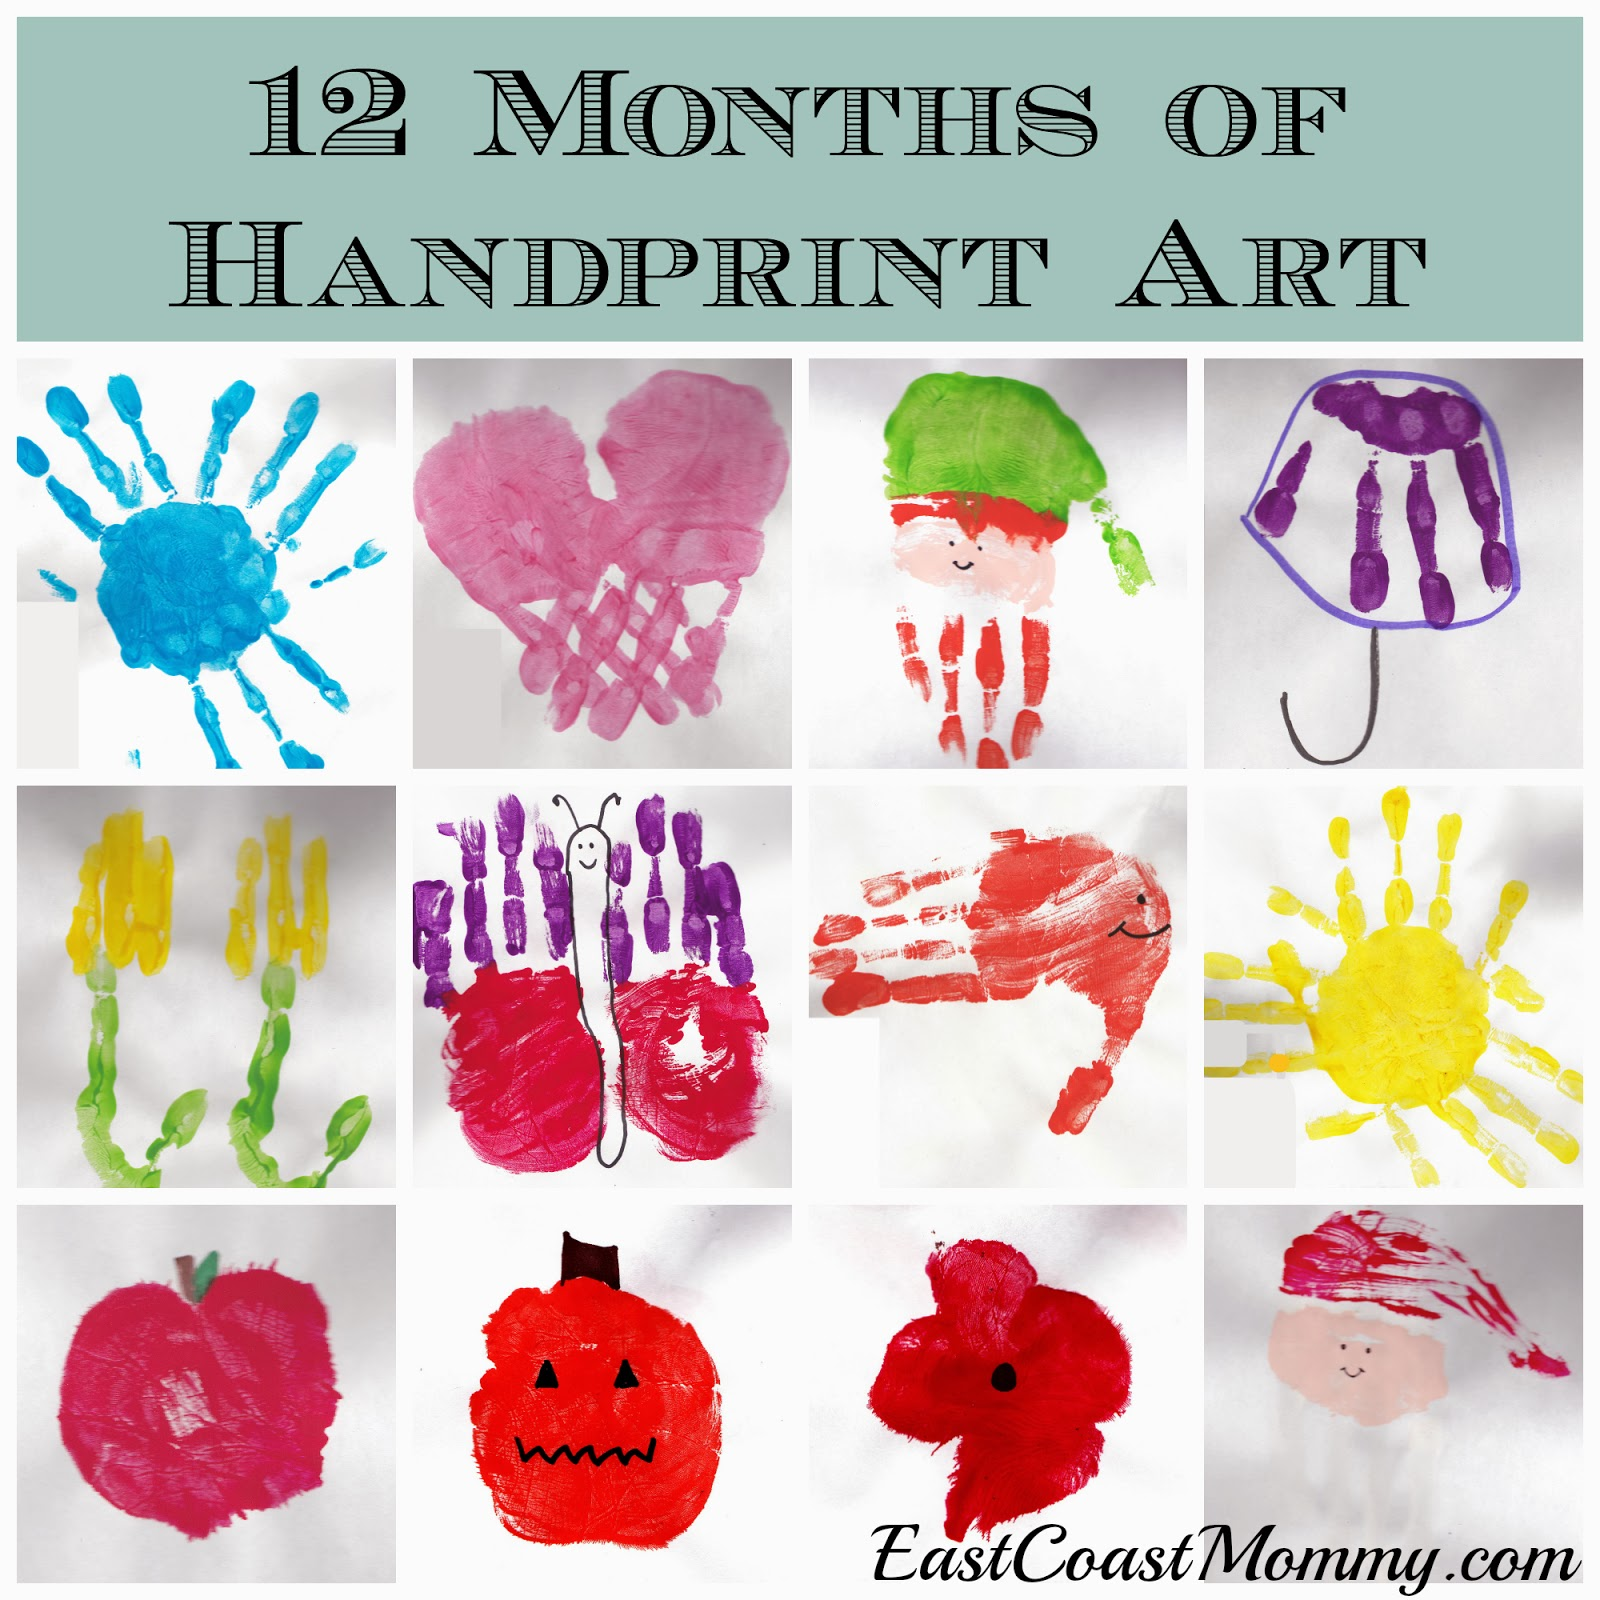 Kids Calendar Art Ideas : East coast mommy months of handprint art